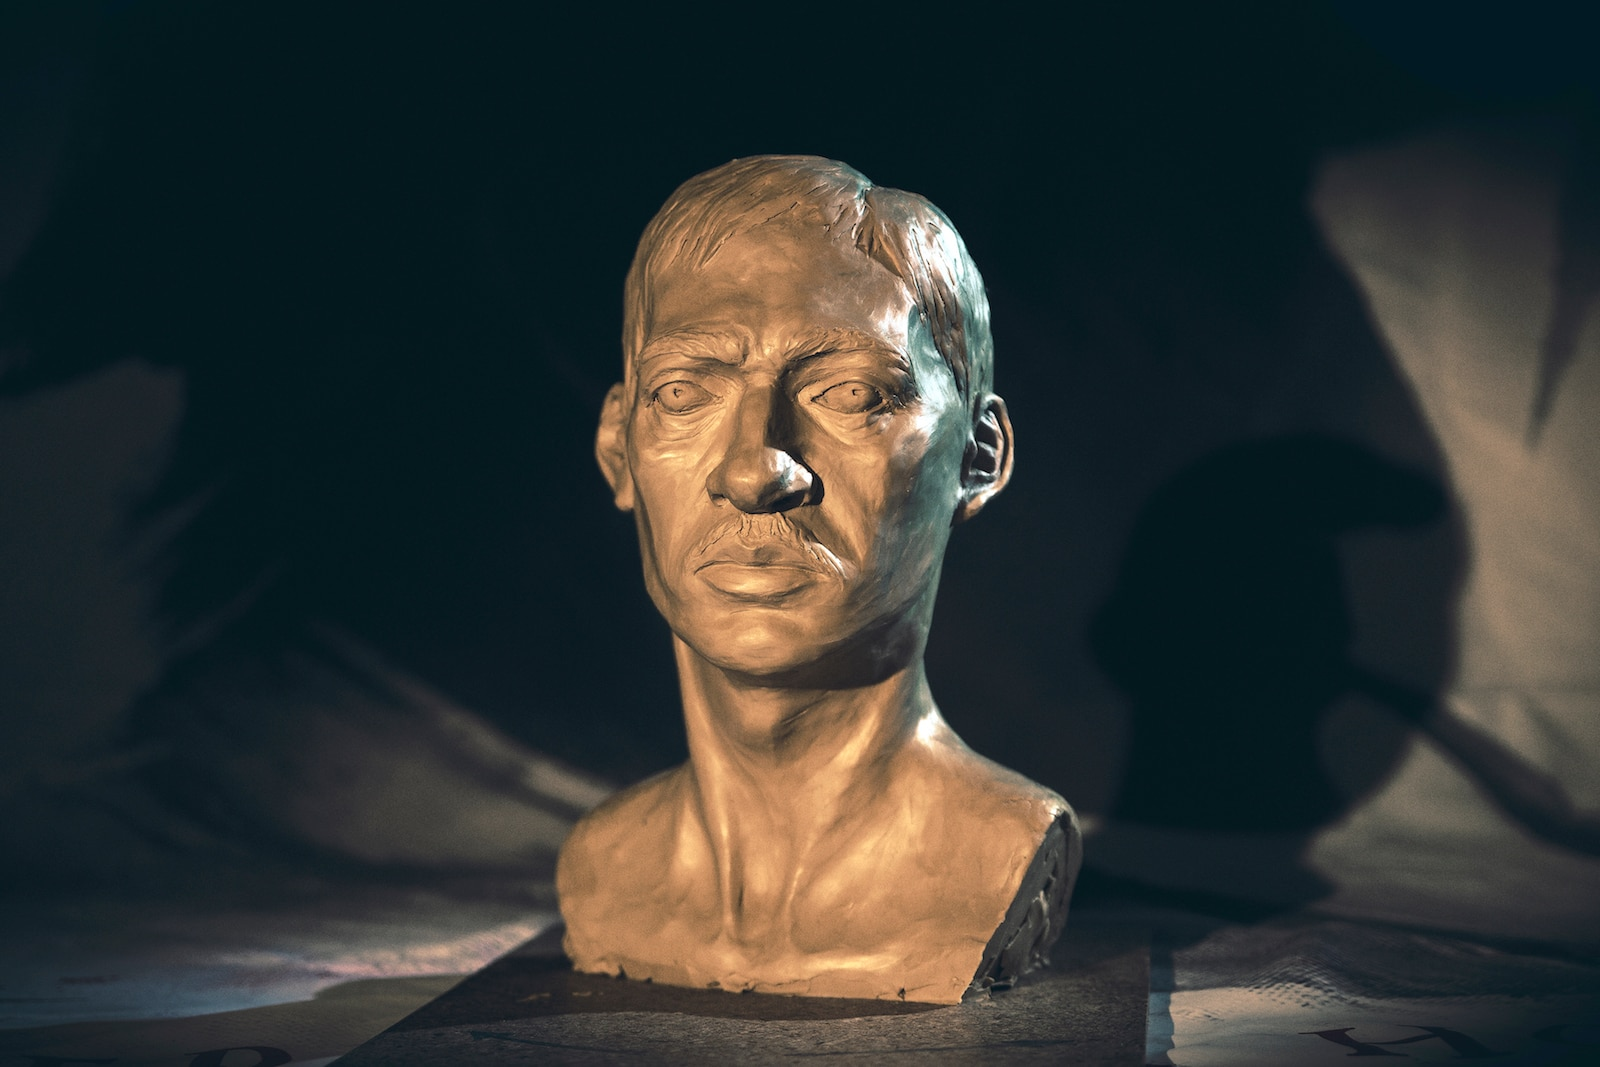 """sinkingcitysculpture 7 - Exclusive: The Sinking City Team Uses These Unsettling Sculptures to """"Get in the Mood"""""""